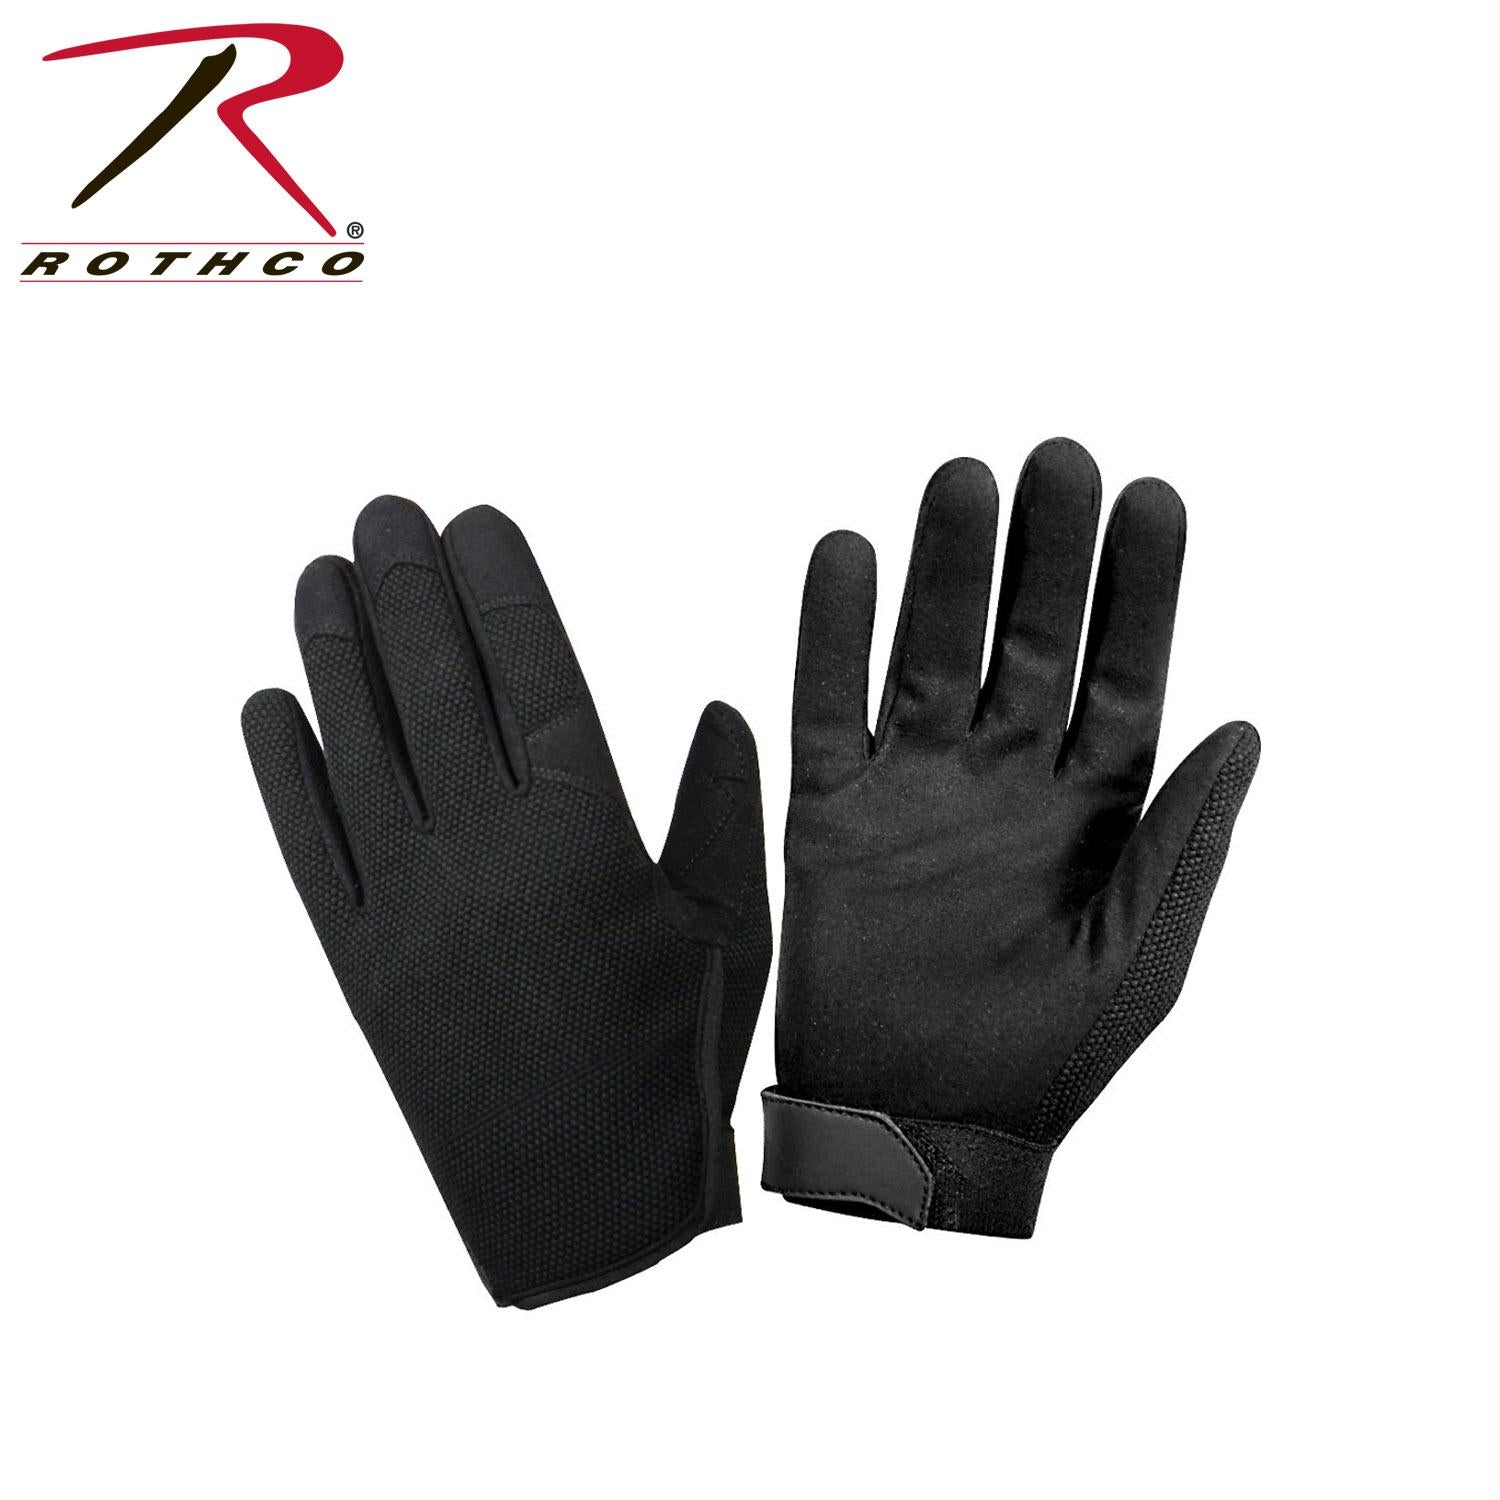 Rothco Ultra-light High Performance Gloves - Black / L